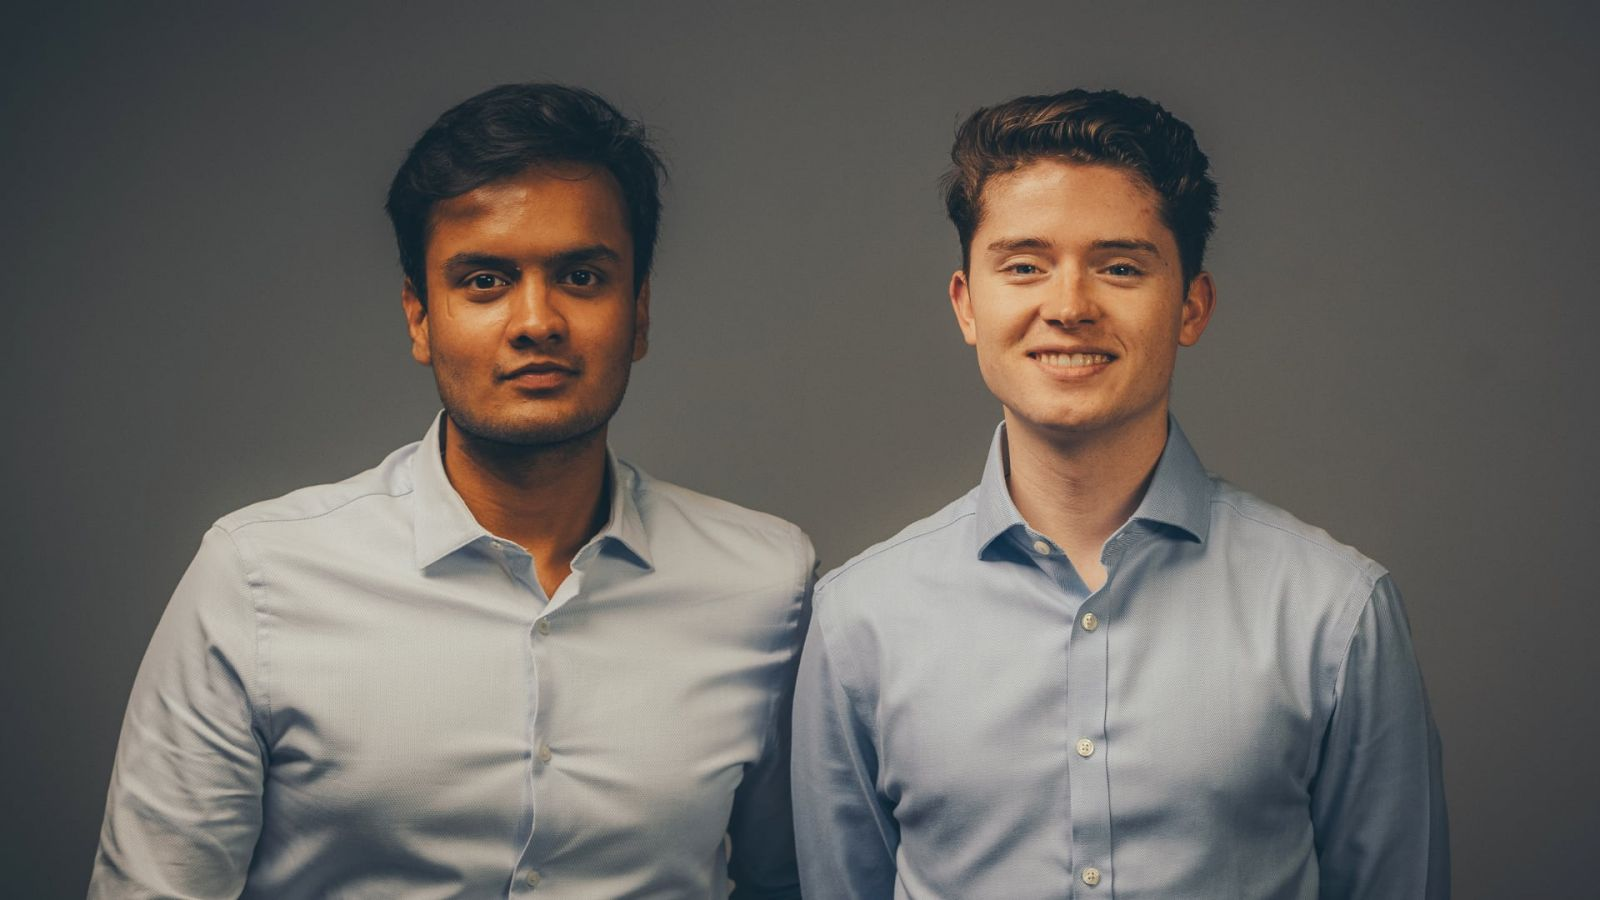 Nishant Jain (left), an electrical engineering technology graduate from the Purdue Polytechnic Institute and Thibault Corens, who earned a double major from the Polytechnic Institute in mechanical engineering technology and manufacturing engineering technology, are co-founders of Presso Inc., a kiosk garment cleaning device that takes only three to seven minutes to clean clothes through a combination of steam, a cleaning liquid and air drying. (Photo provided)